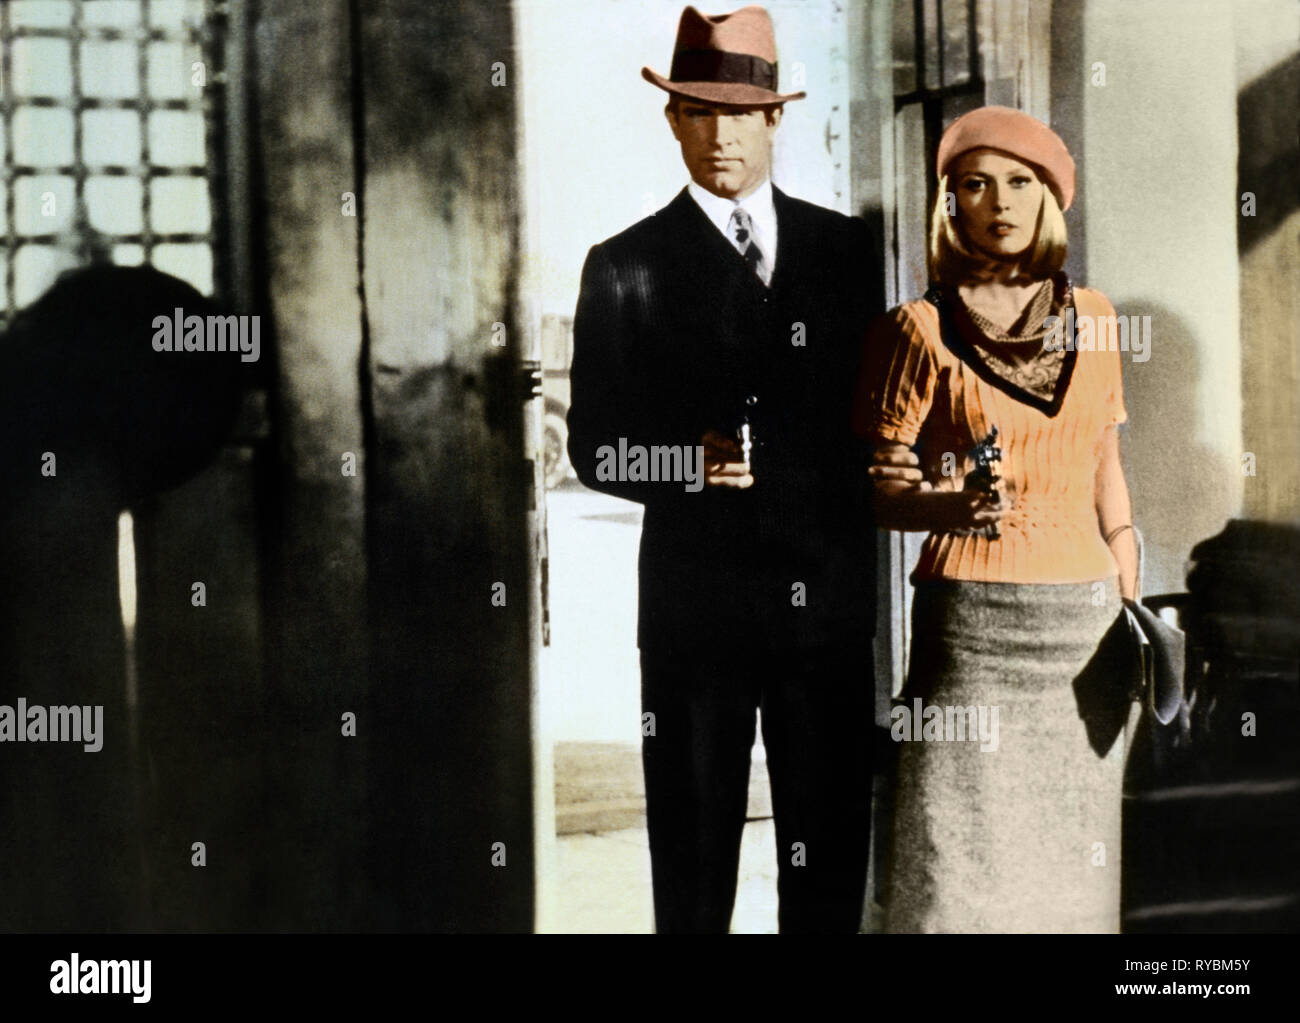 WARREN BEATTY, FAYE DUNAWAY, BONNIE AND CLYDE, 1967 - Stock Image